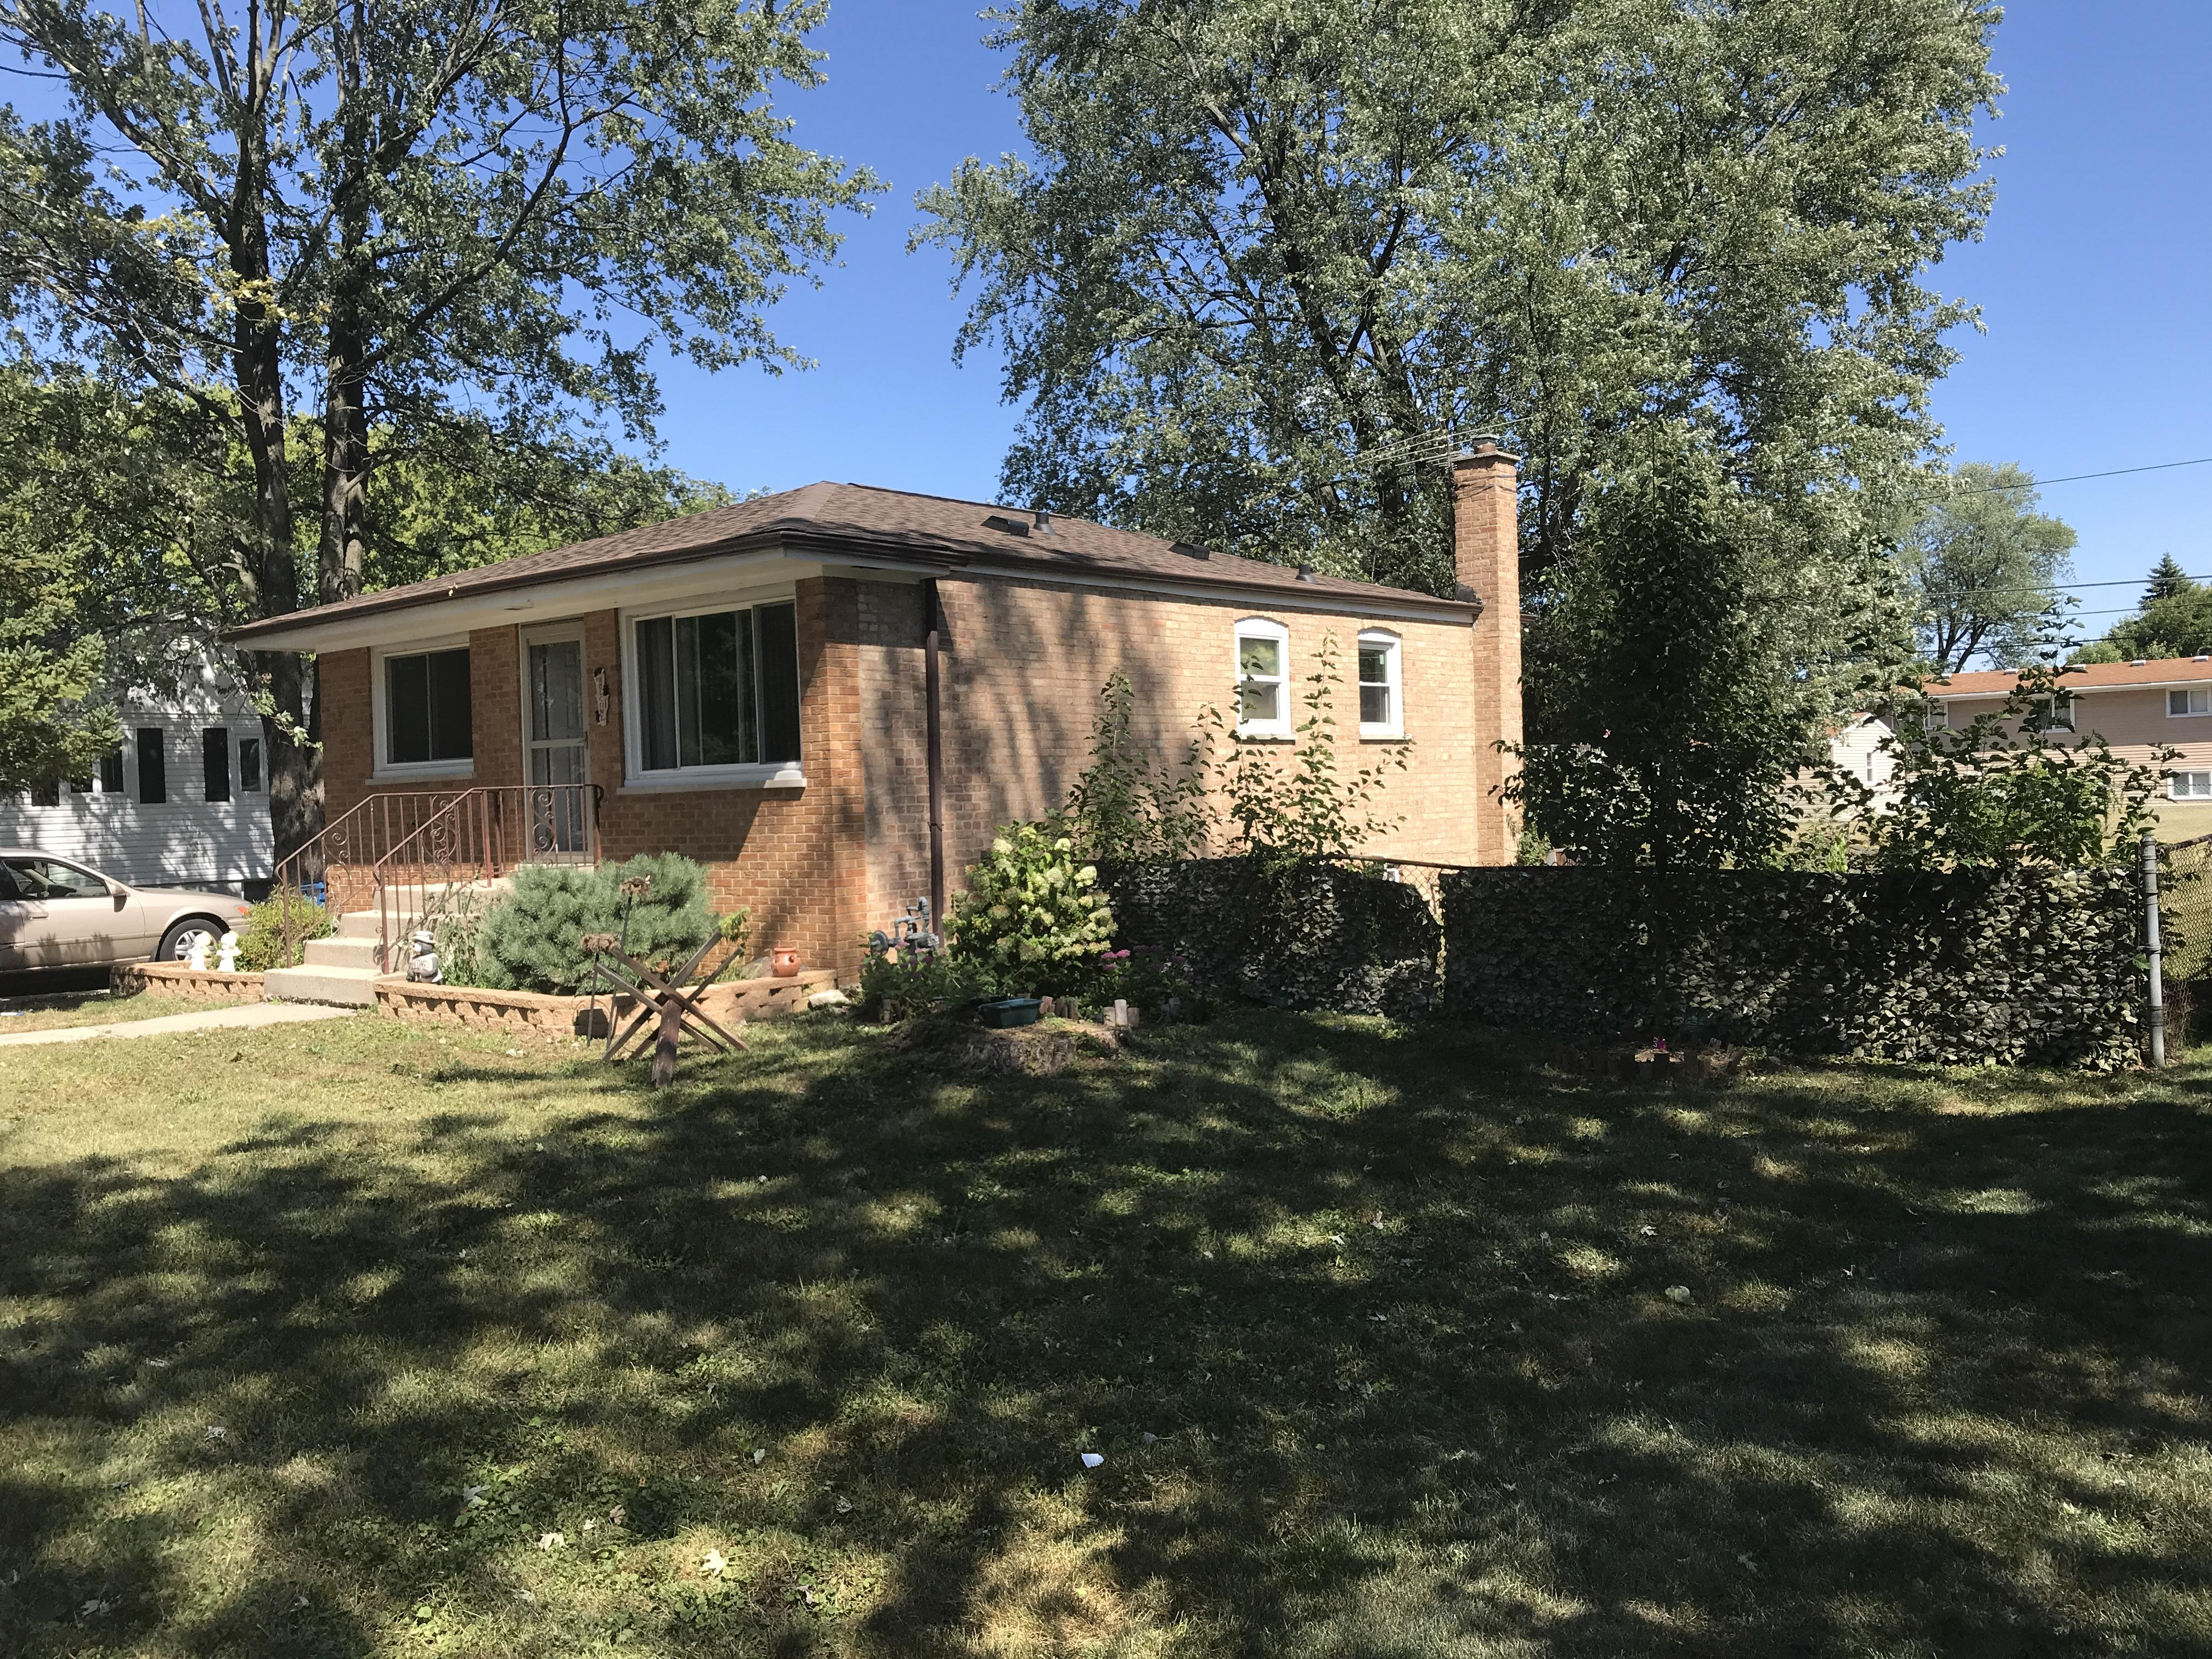 Property Image for 8205 S Lorel Ave